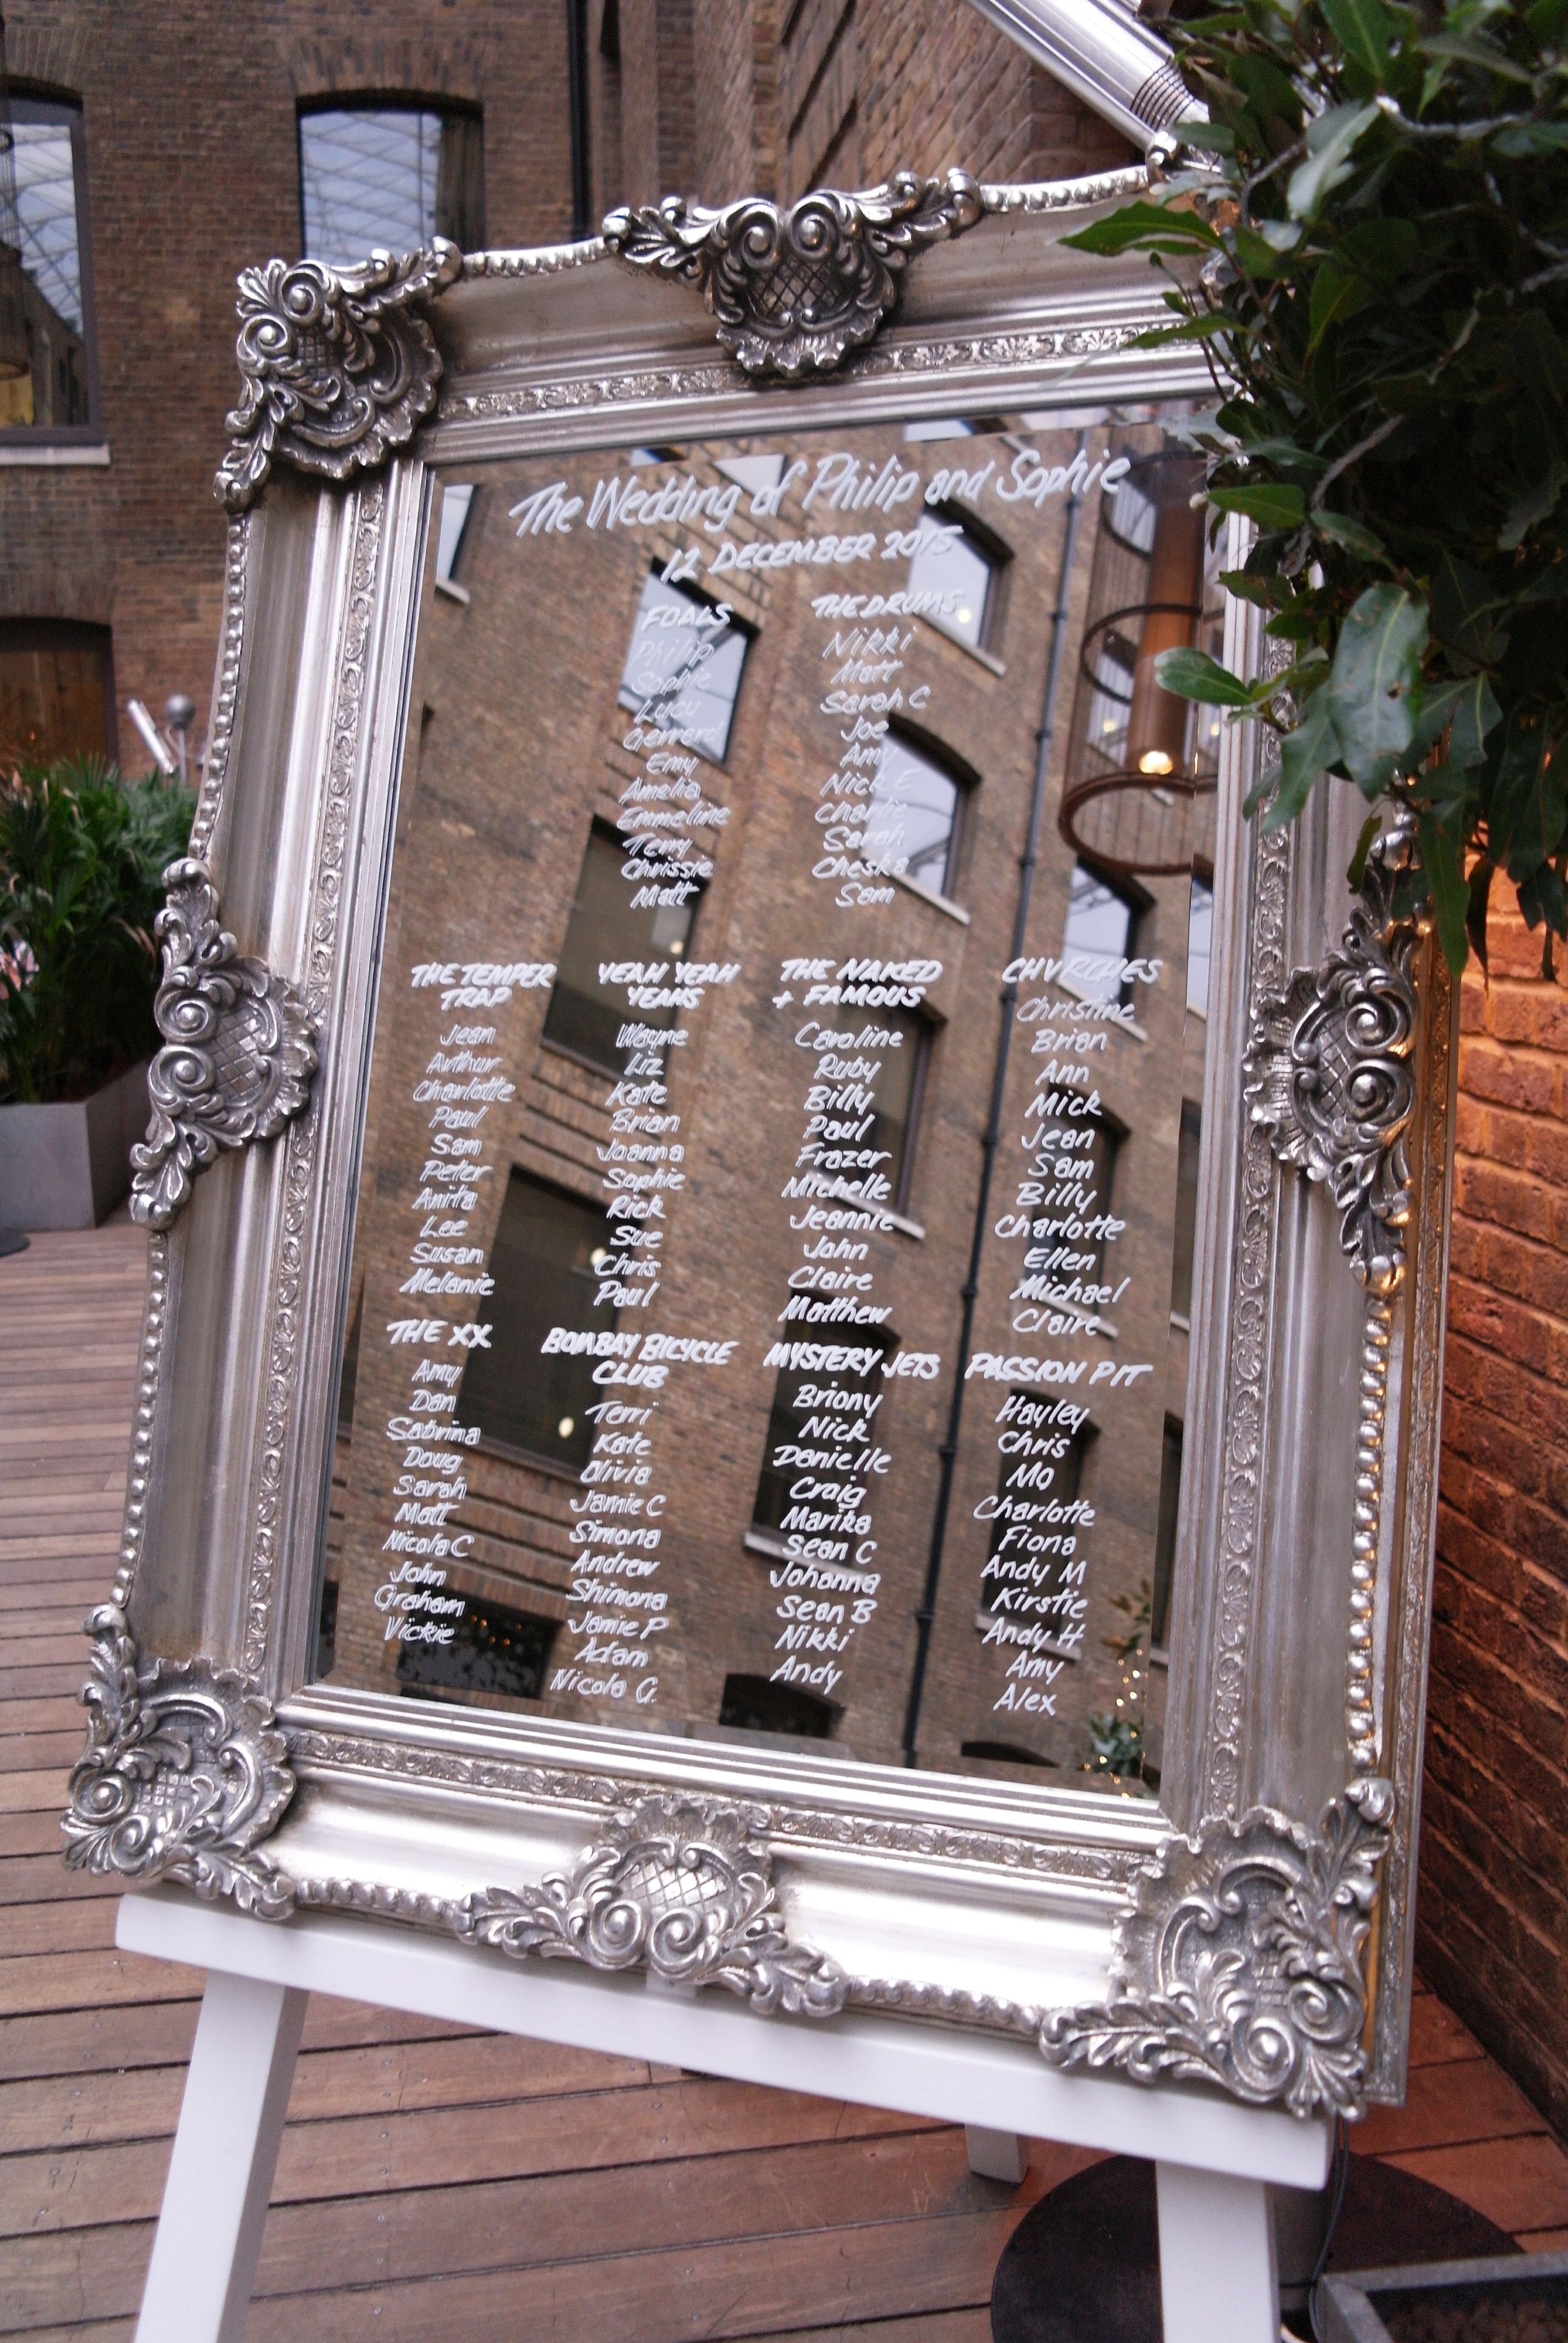 Large Mirror On White Easel With Hand Written Table Plan